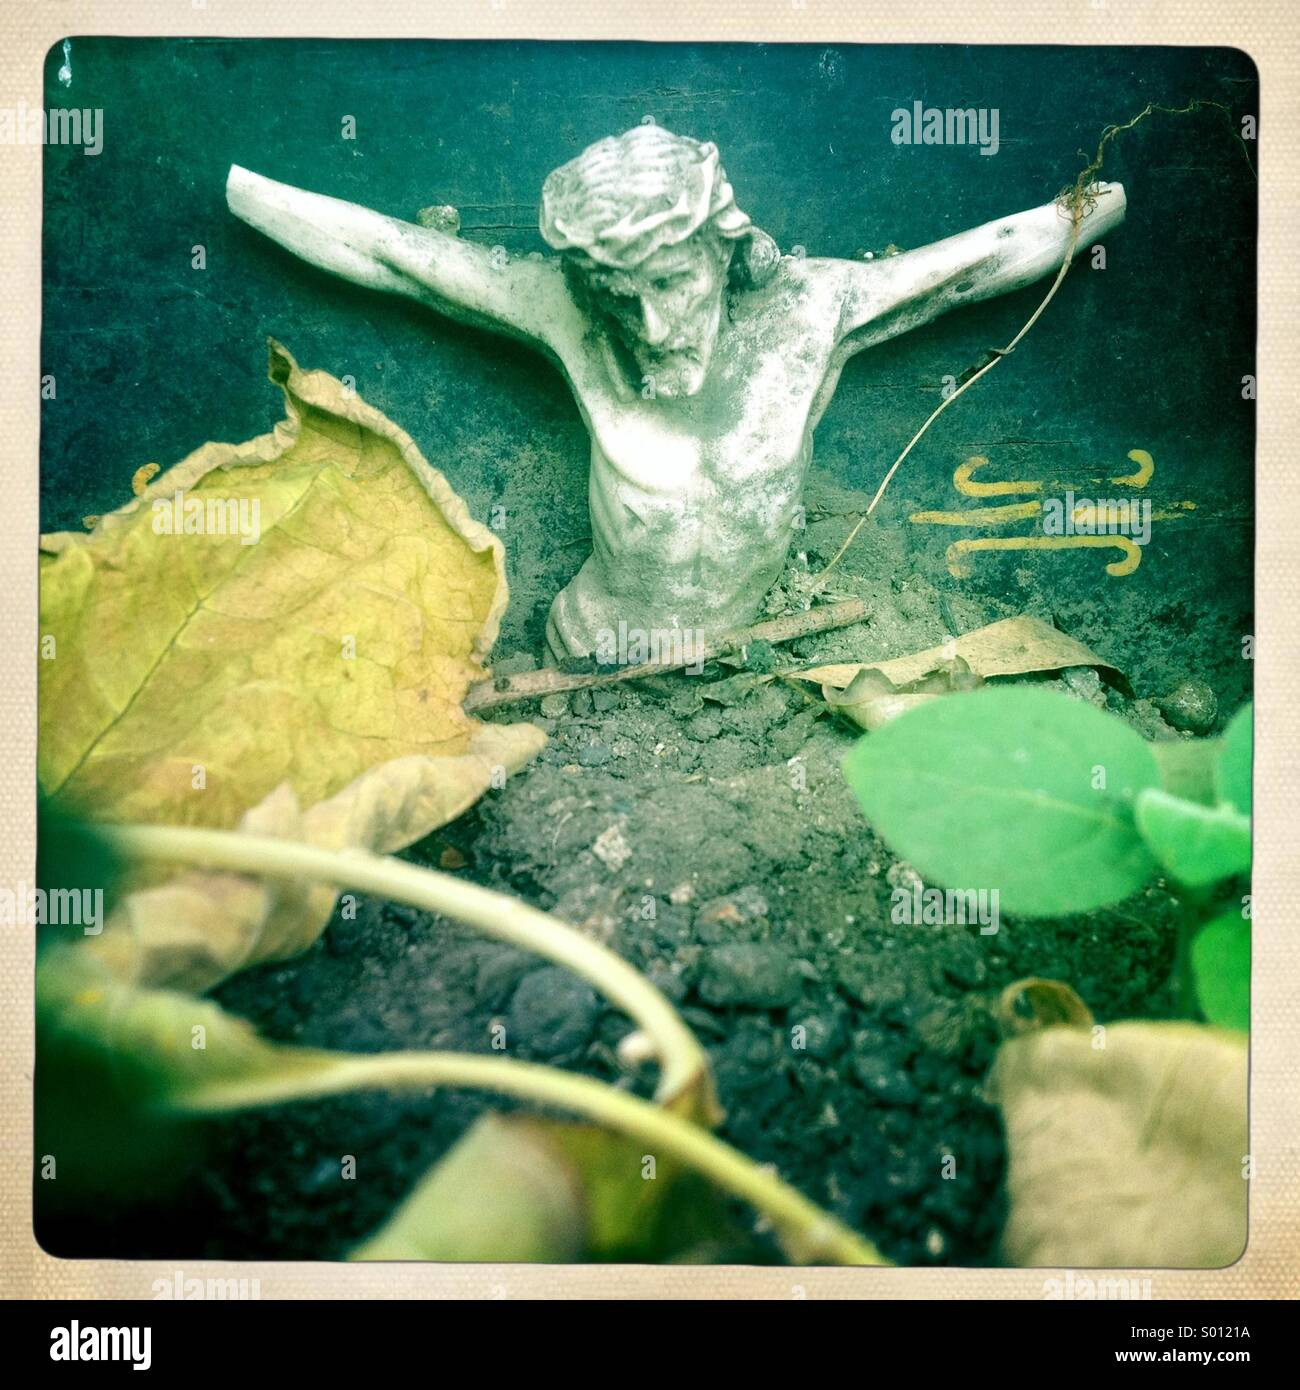 A sculpture of Jesus Christ crucified missing his hands decorates a tomb full of tree leaves during Day of the Dead - Stock Image